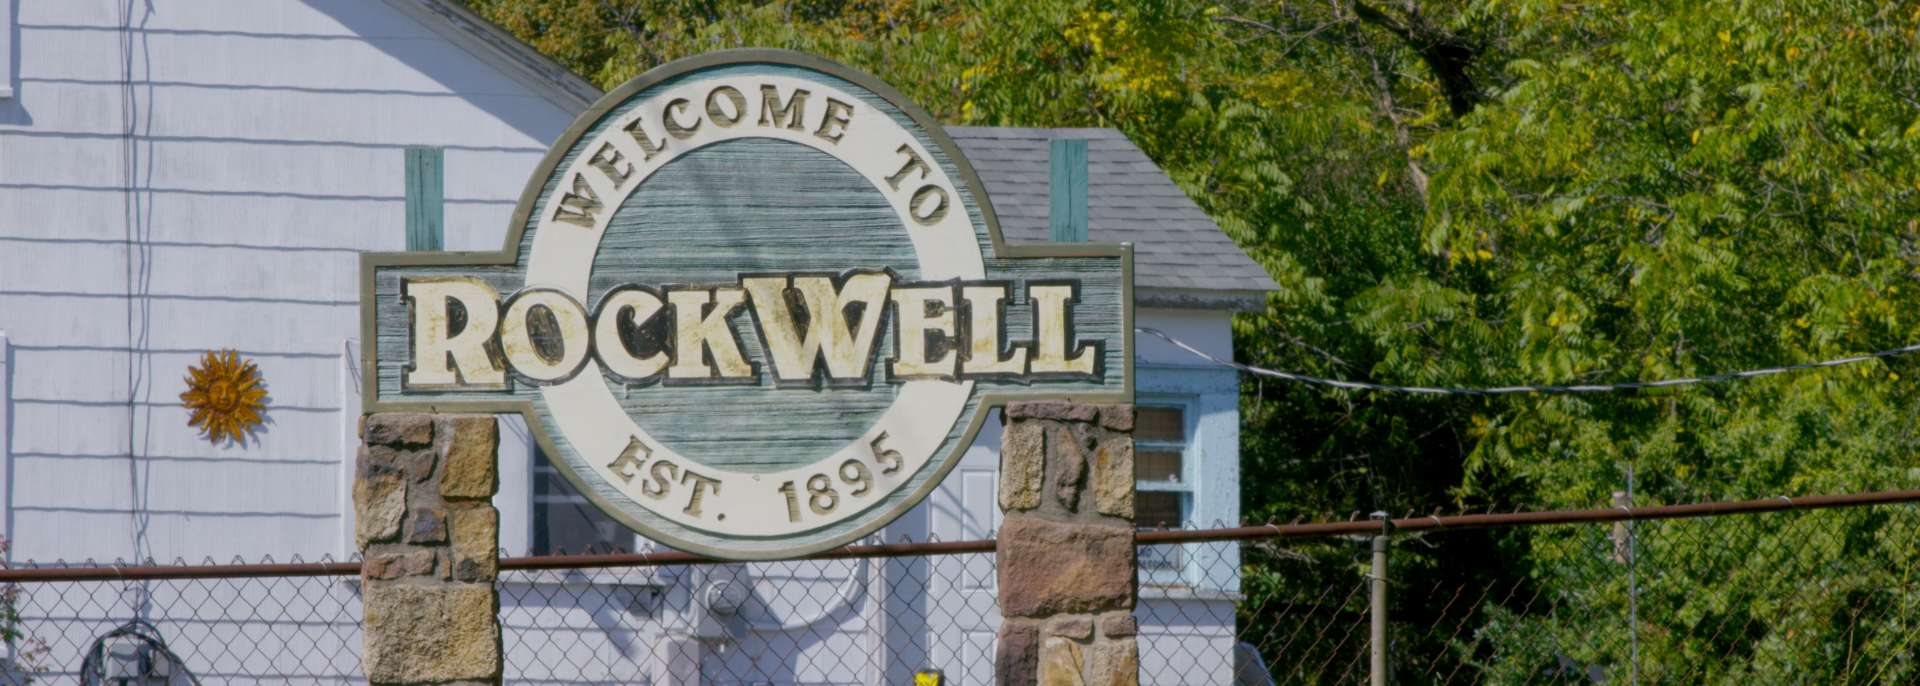 Town sign for Rockwell